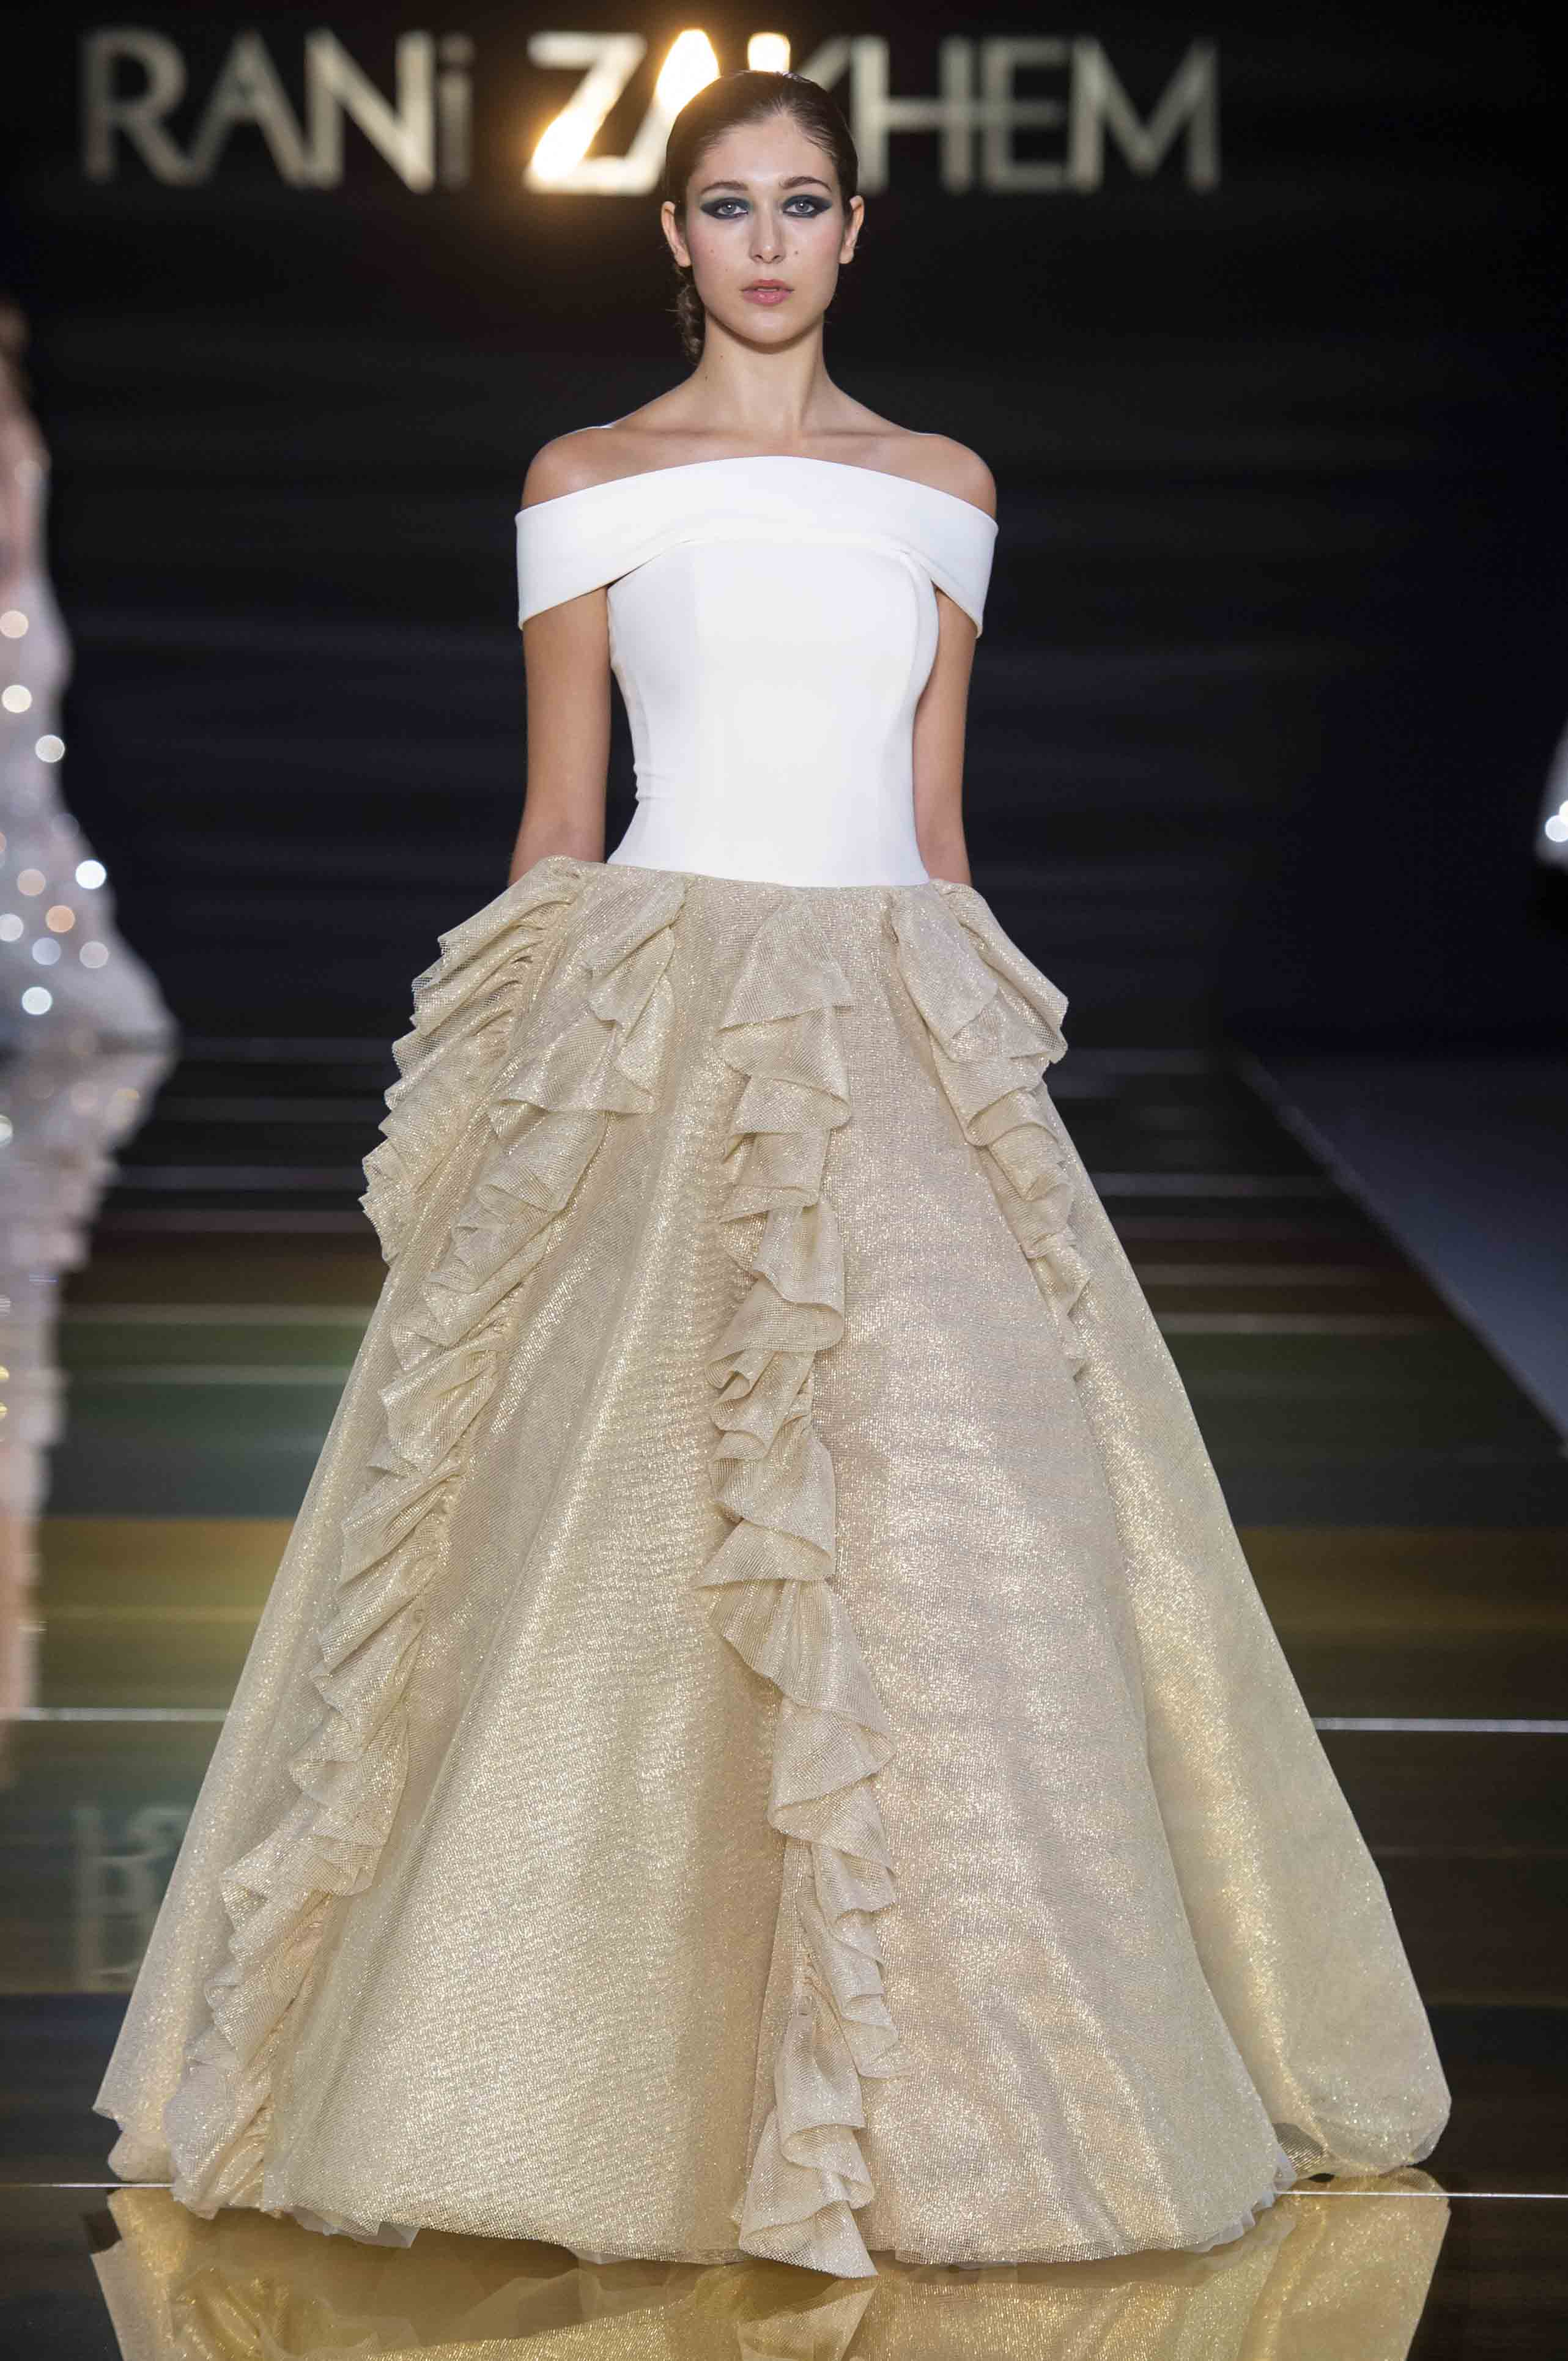 Rani zakhem couture collection automne hiver fall winter 2018 2019 pfw © imaxtree (4)